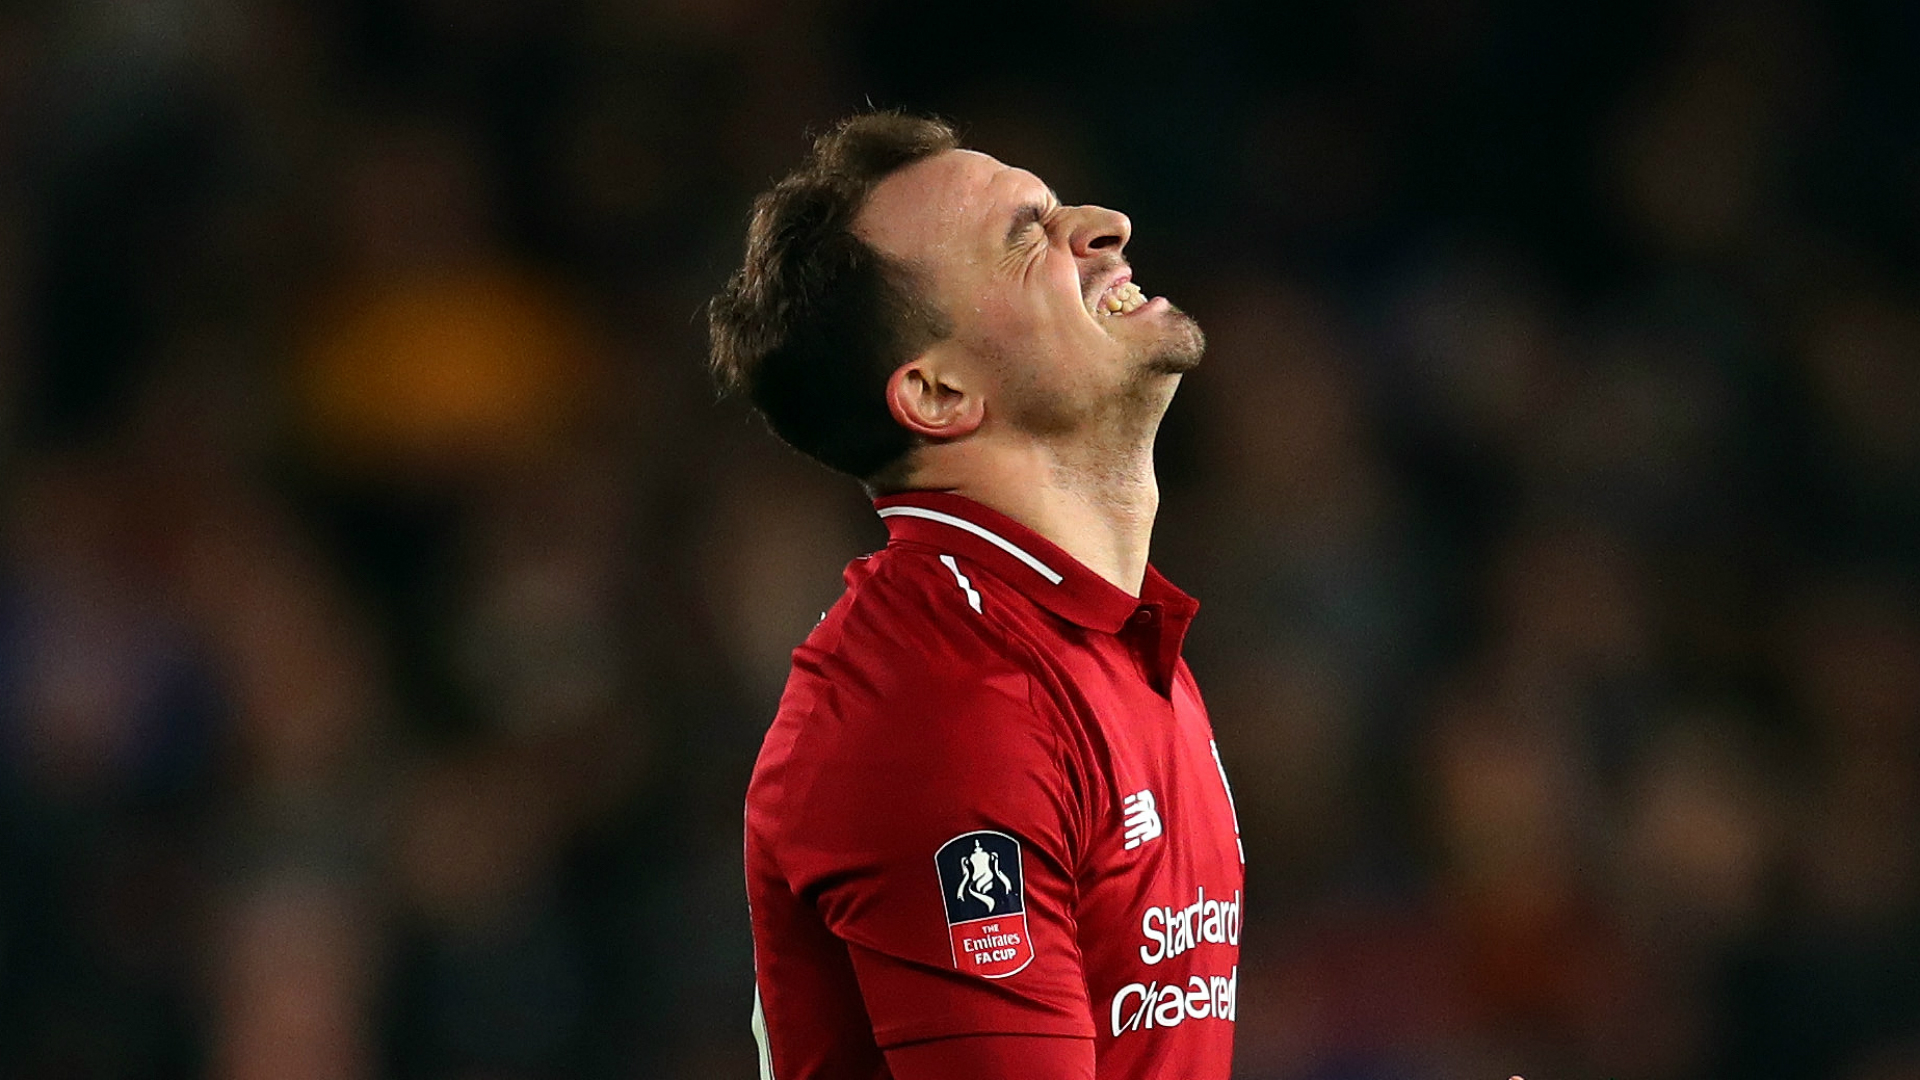 Klopp appears to confirm Shaqiri is set to leave Liverpool